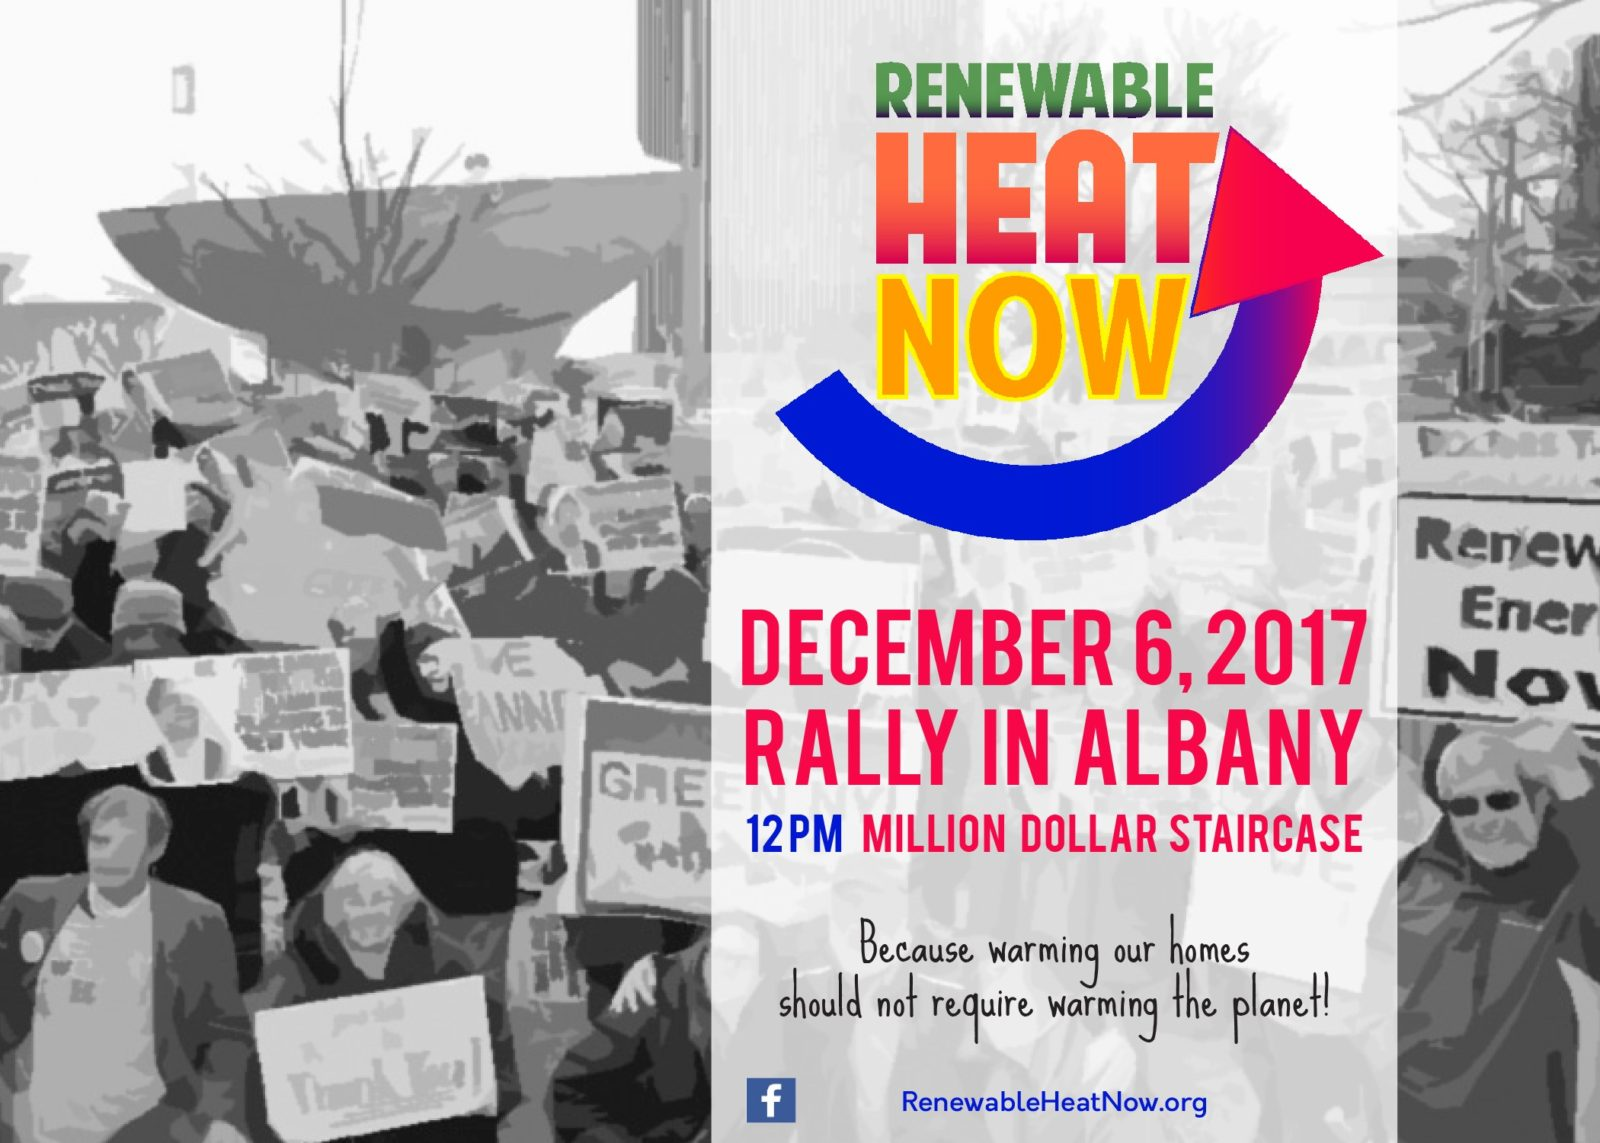 Renewable_Heat_Now_Rally_Dec_6_2017.png